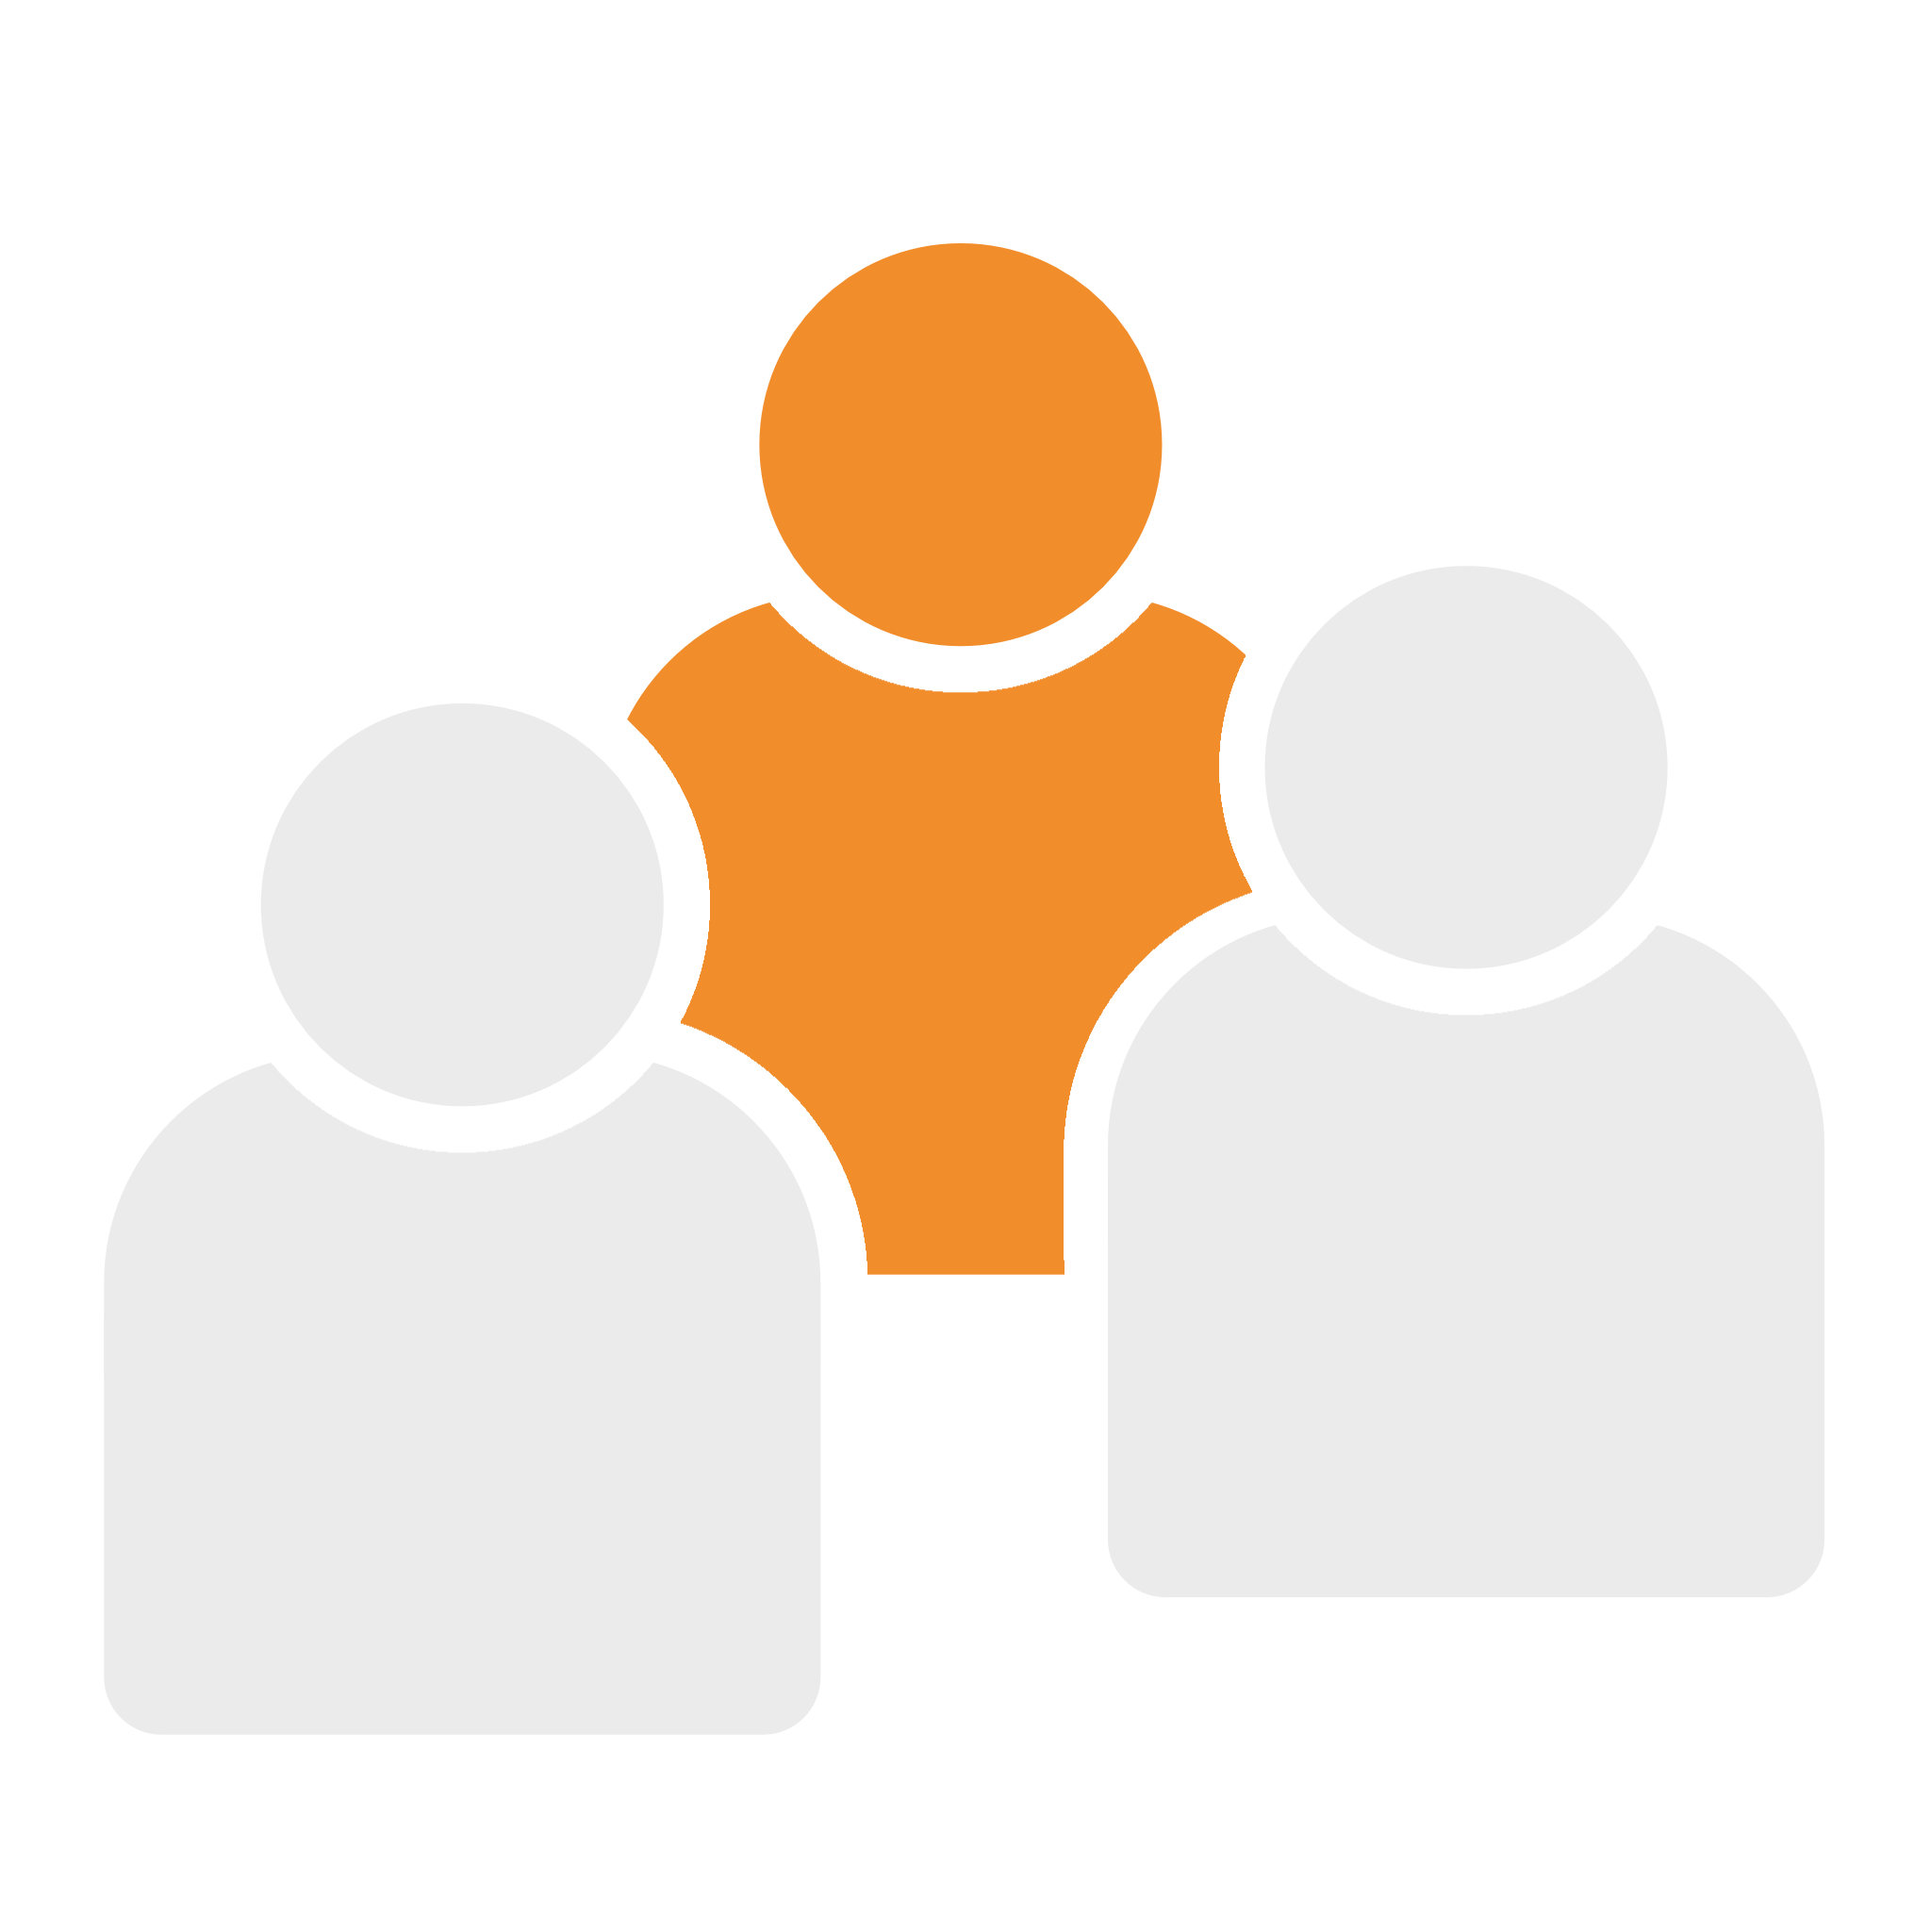 icon of a group of persons, center one orange, both in the front are gray